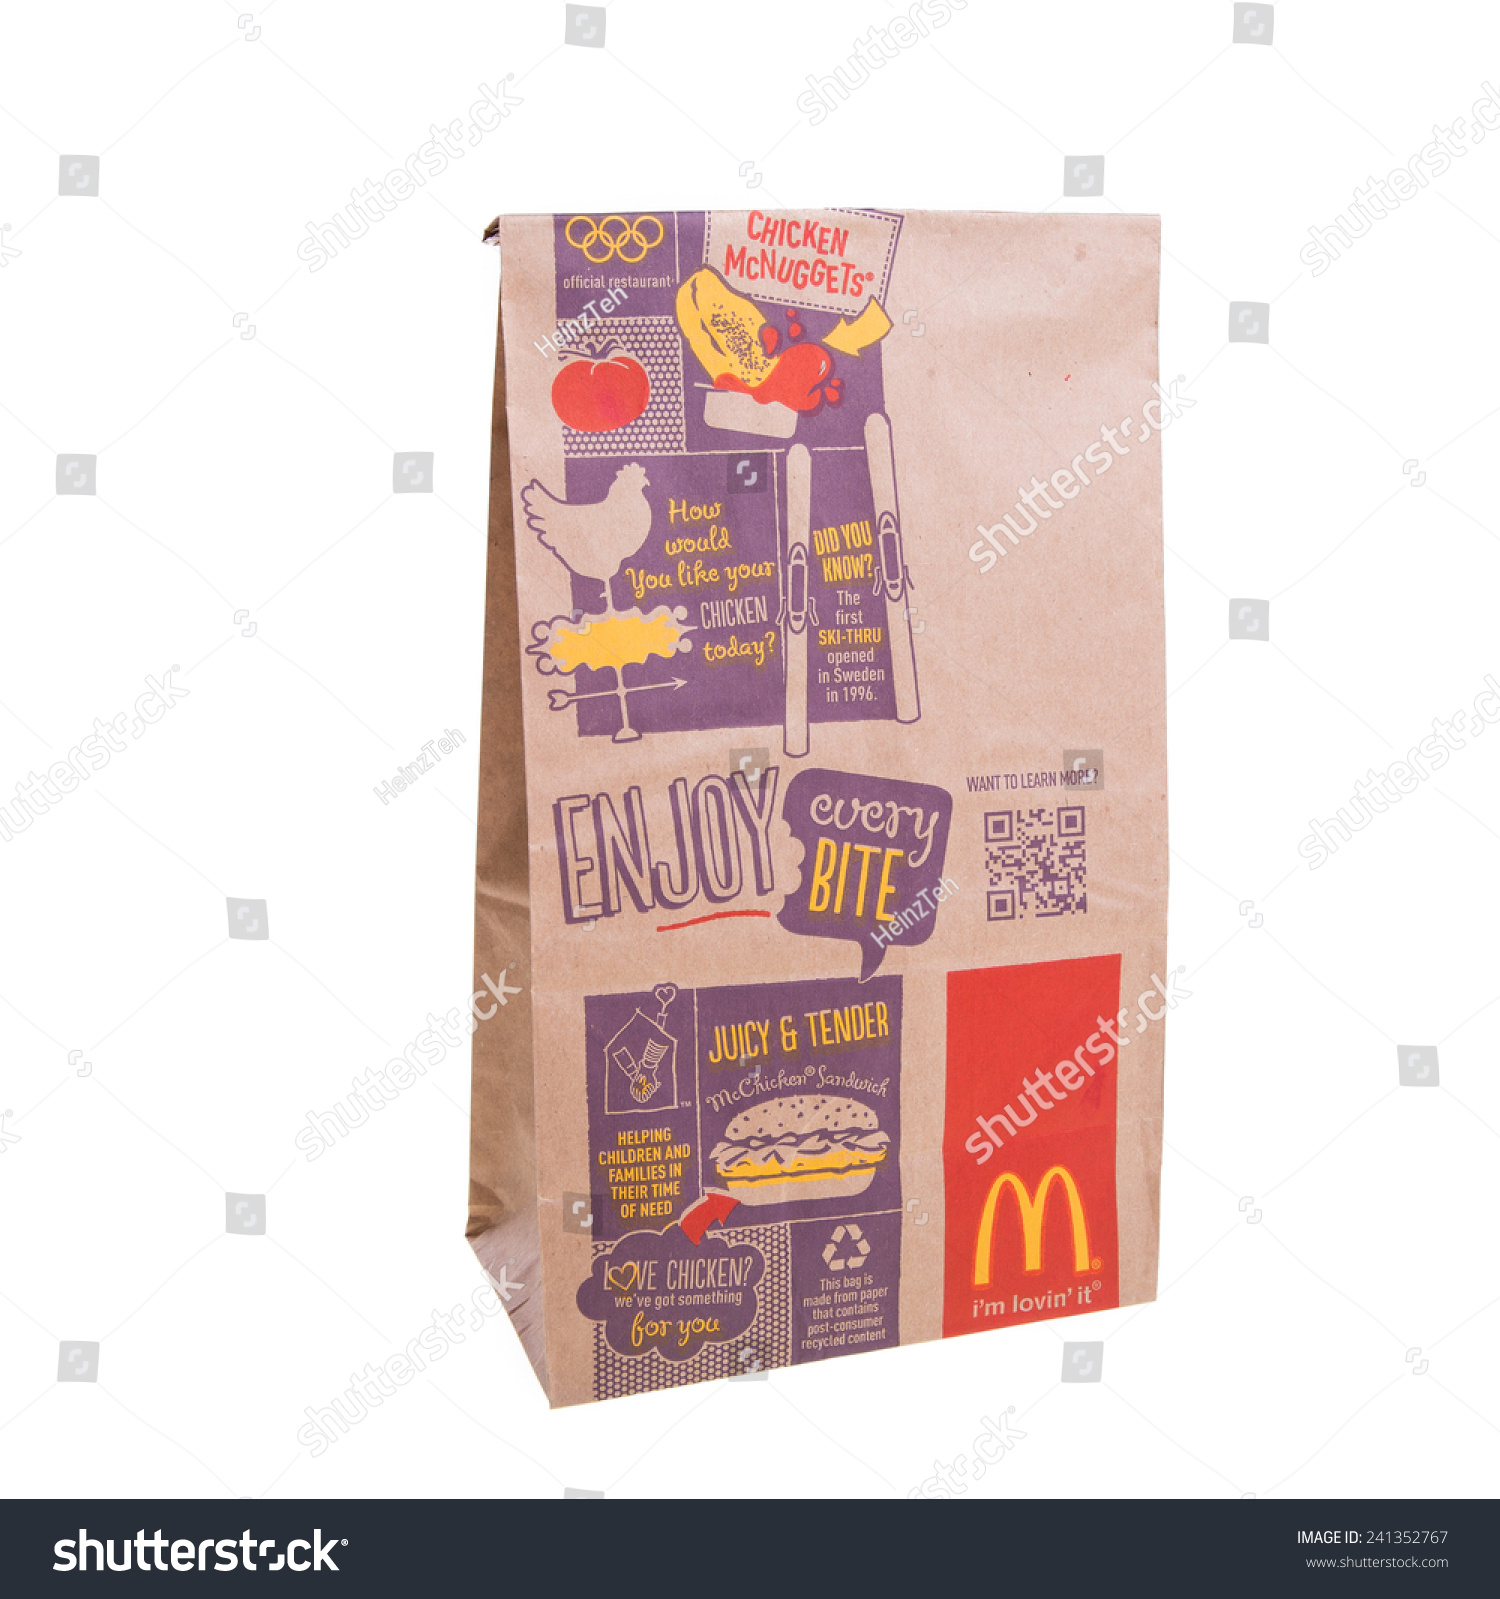 problem encounter by the fast food chain or restaurants essay Some people prefer to eat at food stands or restaurants oth food stands and some small, casual restaurants provide plenty of good food at very reasonable prices.